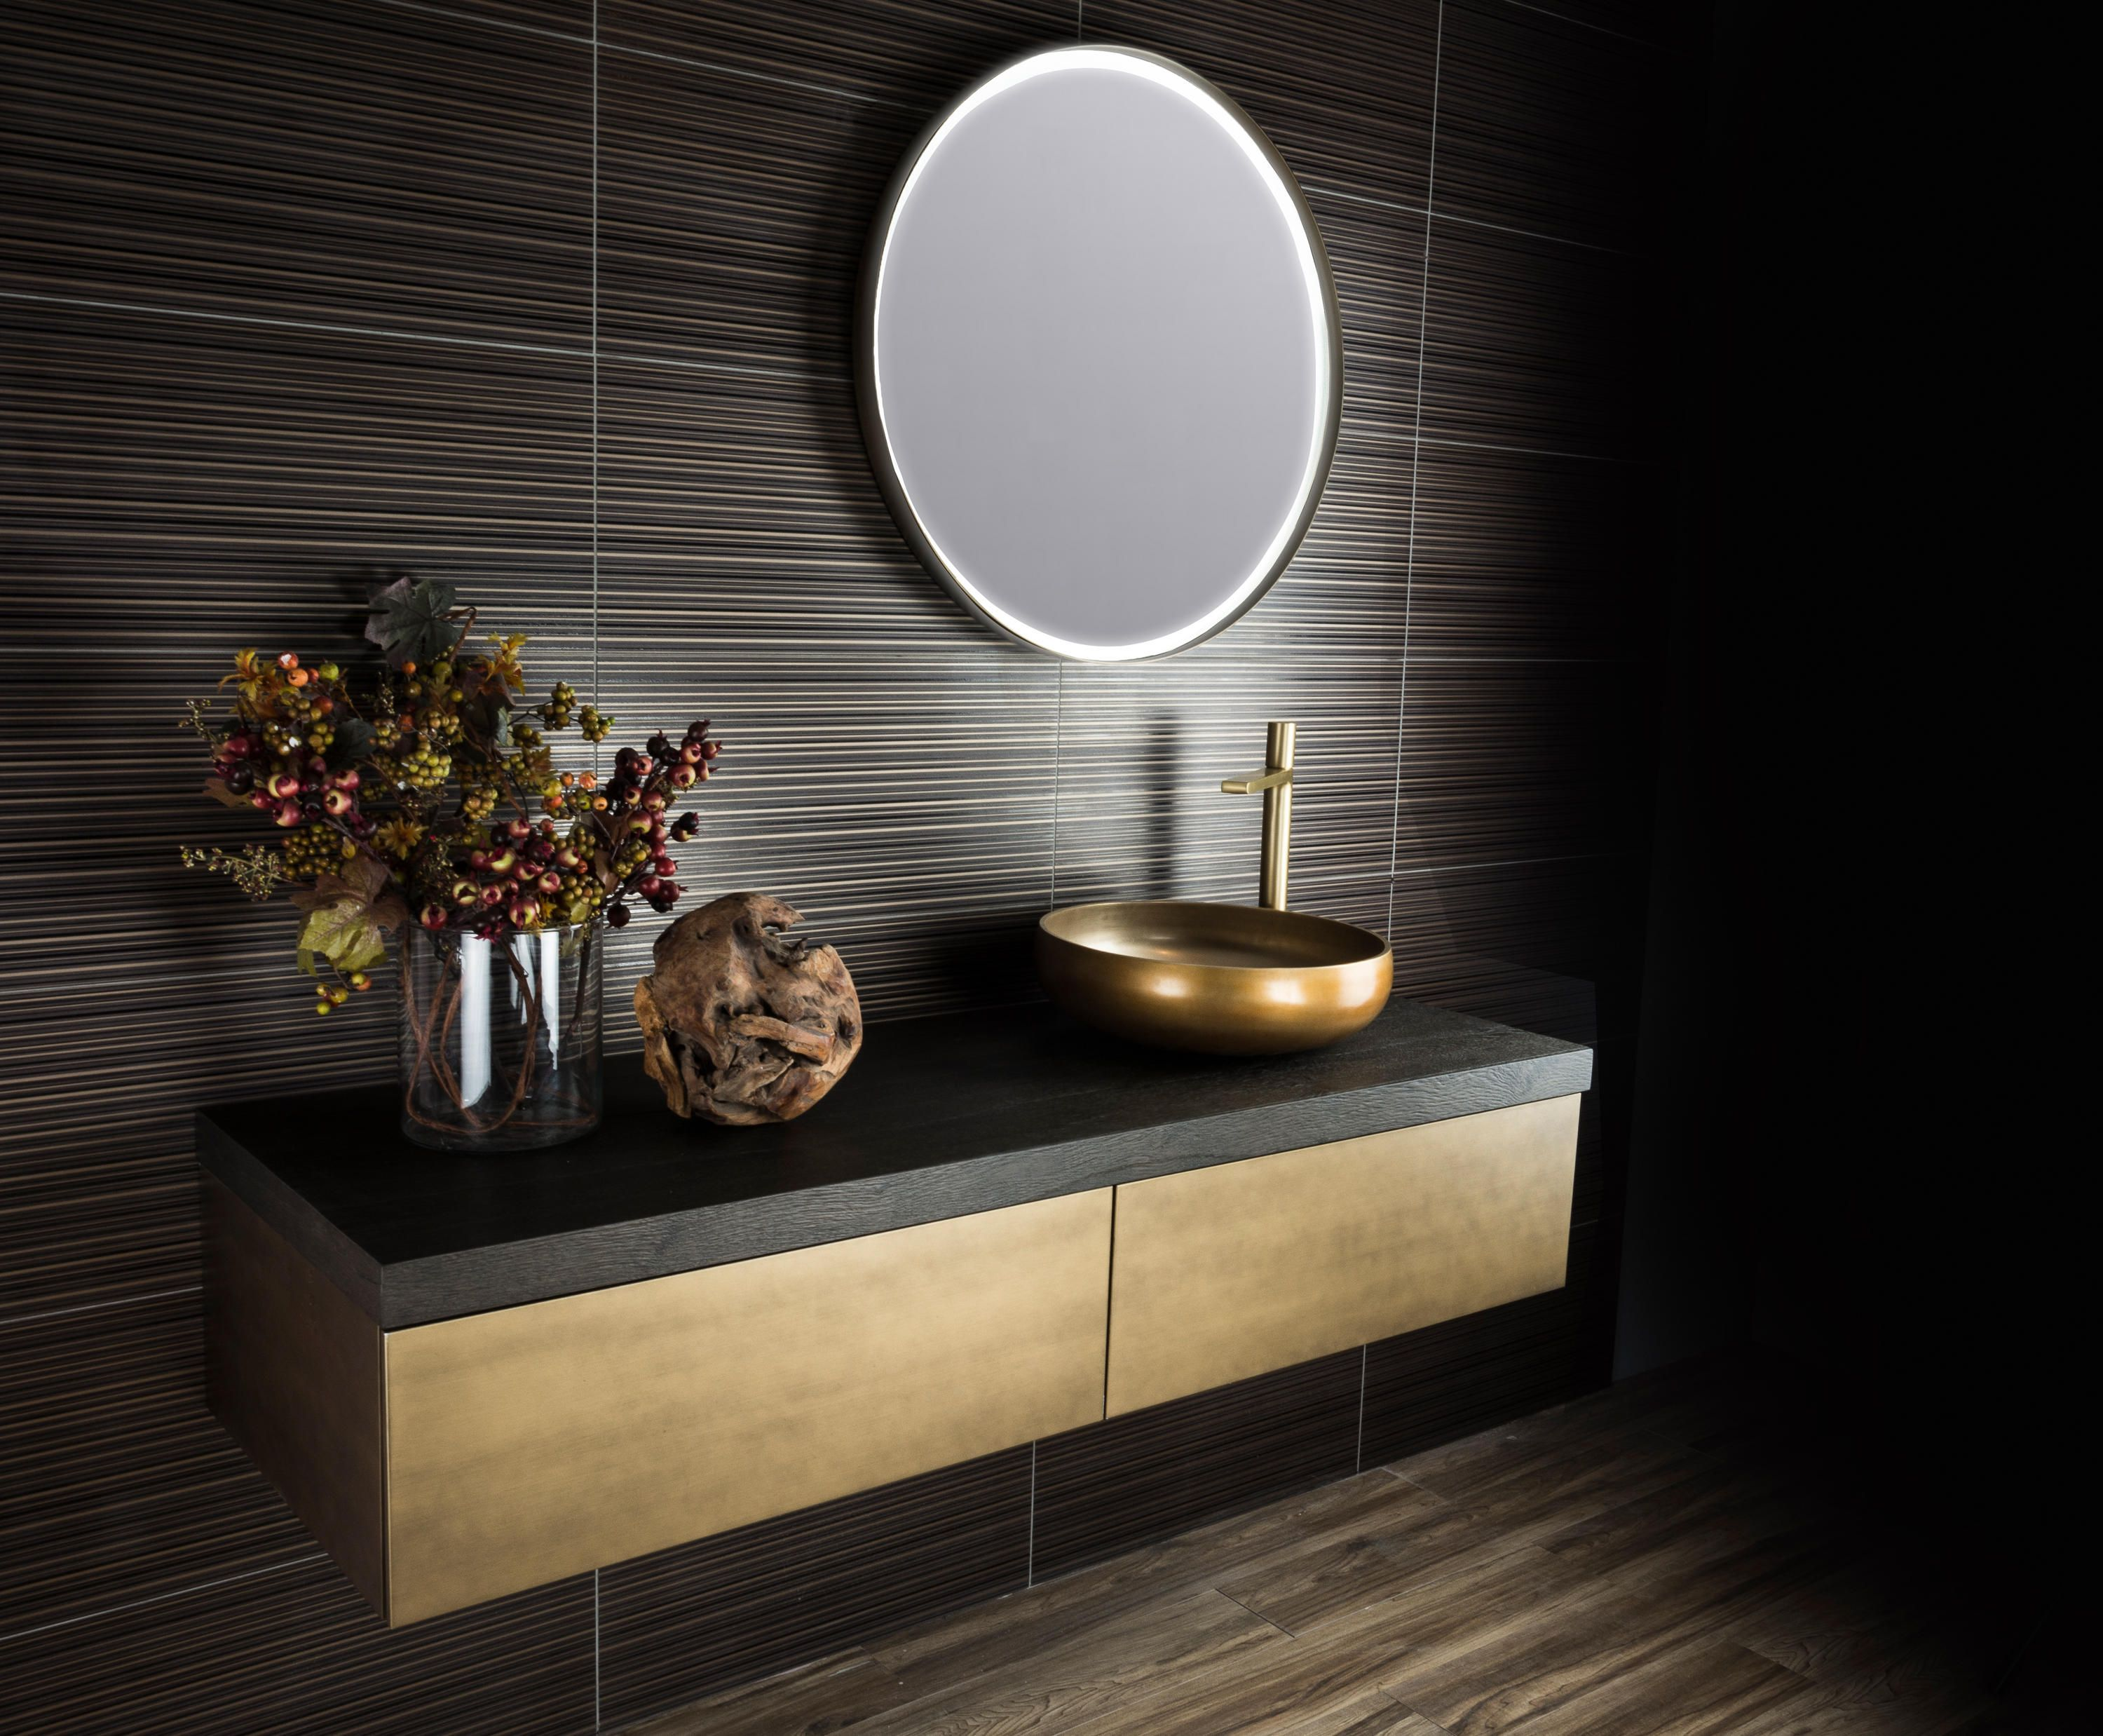 Bagno Design London Bagnodesign London Have Designed A Mirror That Not Only